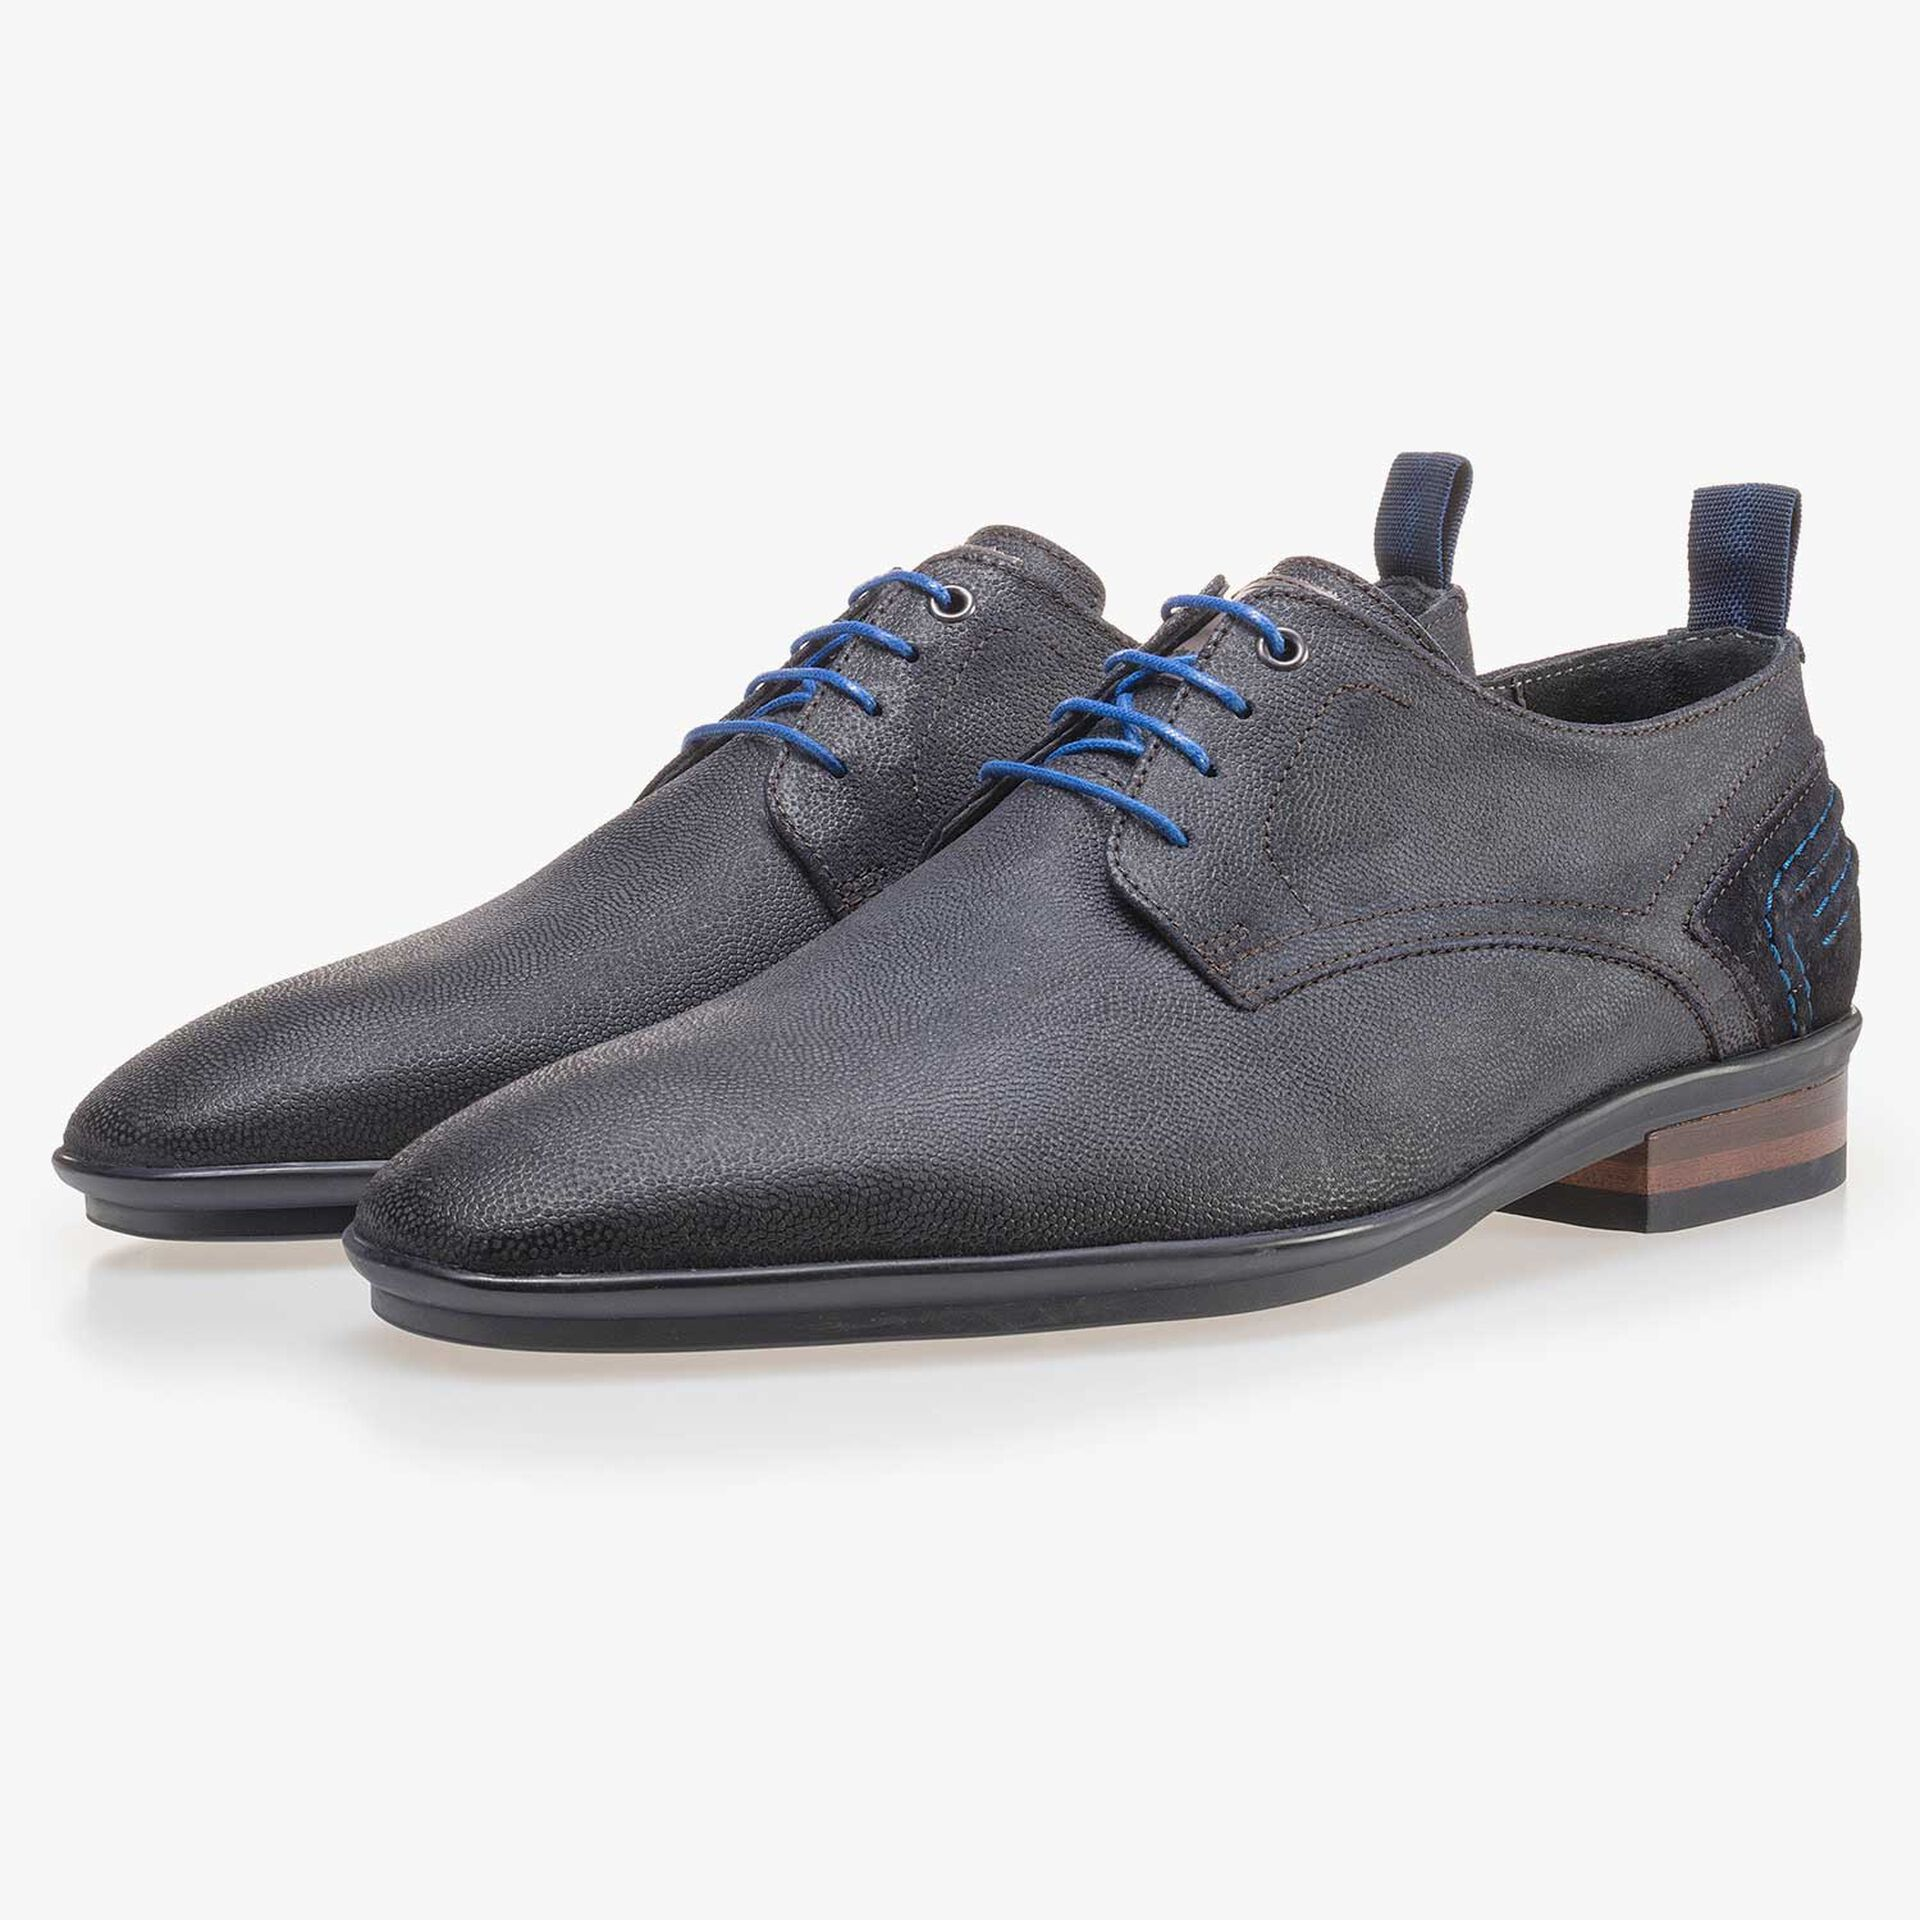 Dark blue patterned lace shoe made of suede leather